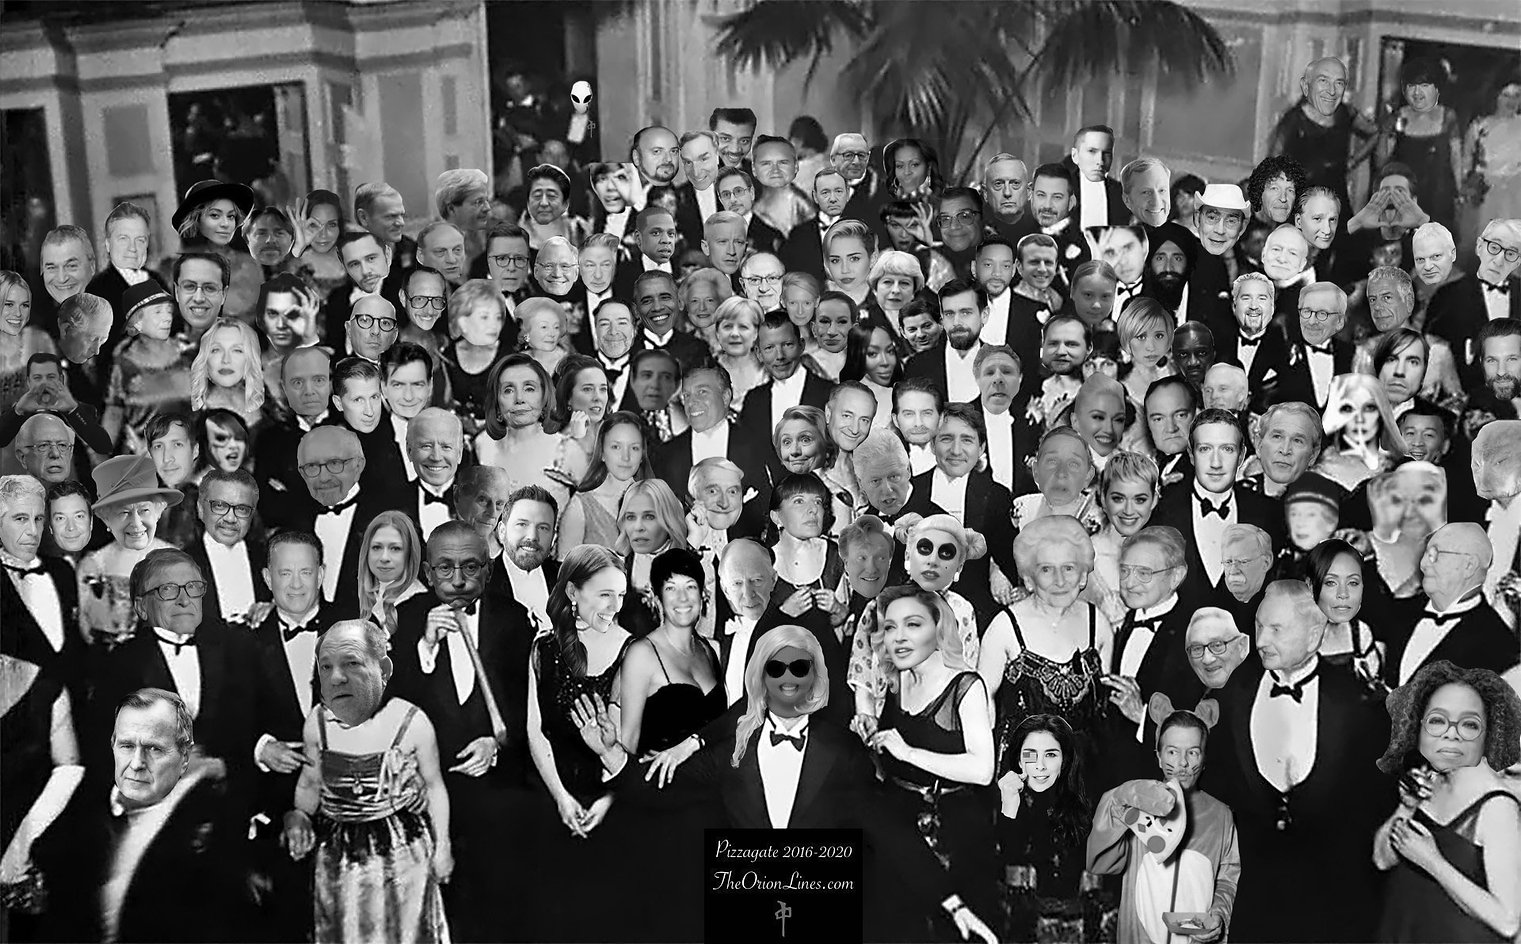 overlook-hotel-july-4th-ball-1921-the-sh